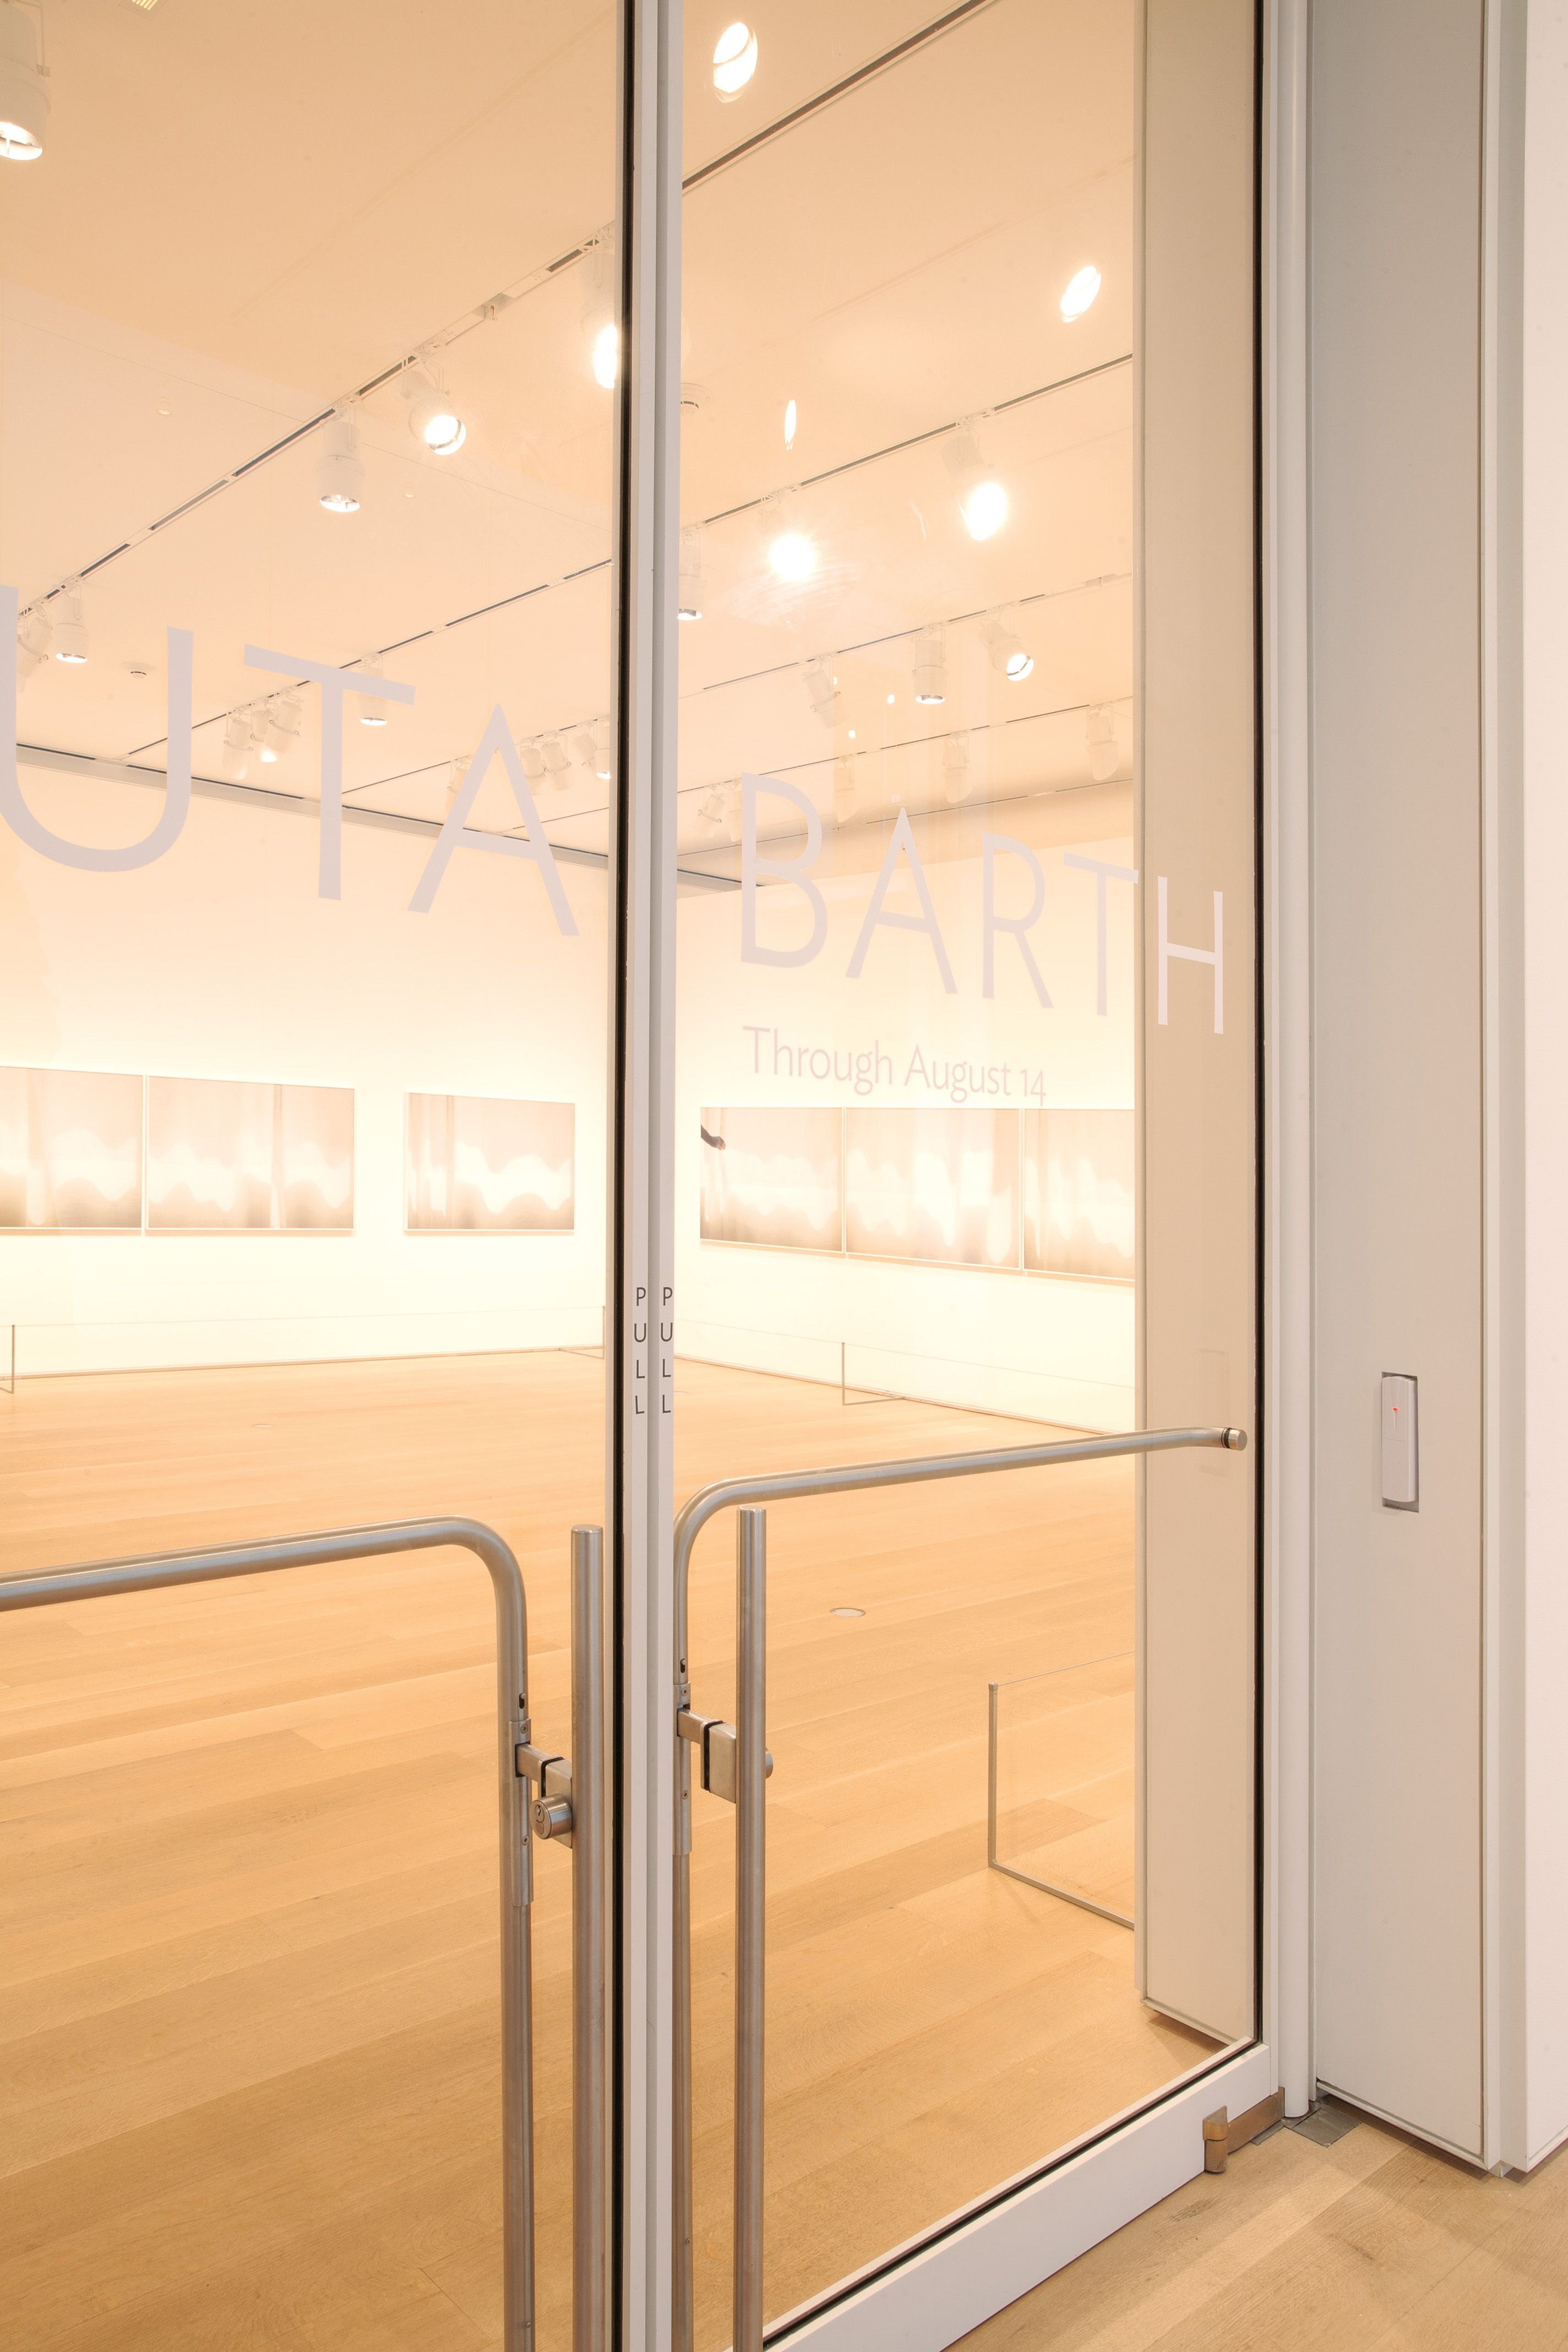 ... installed at the exterior entrances lobby and internal galleries this brings the tally to 118 total signature Ellison doors throughout the museum. & New Museum Wing Specifies 106 New Ellison Doors for Priceless Art ...